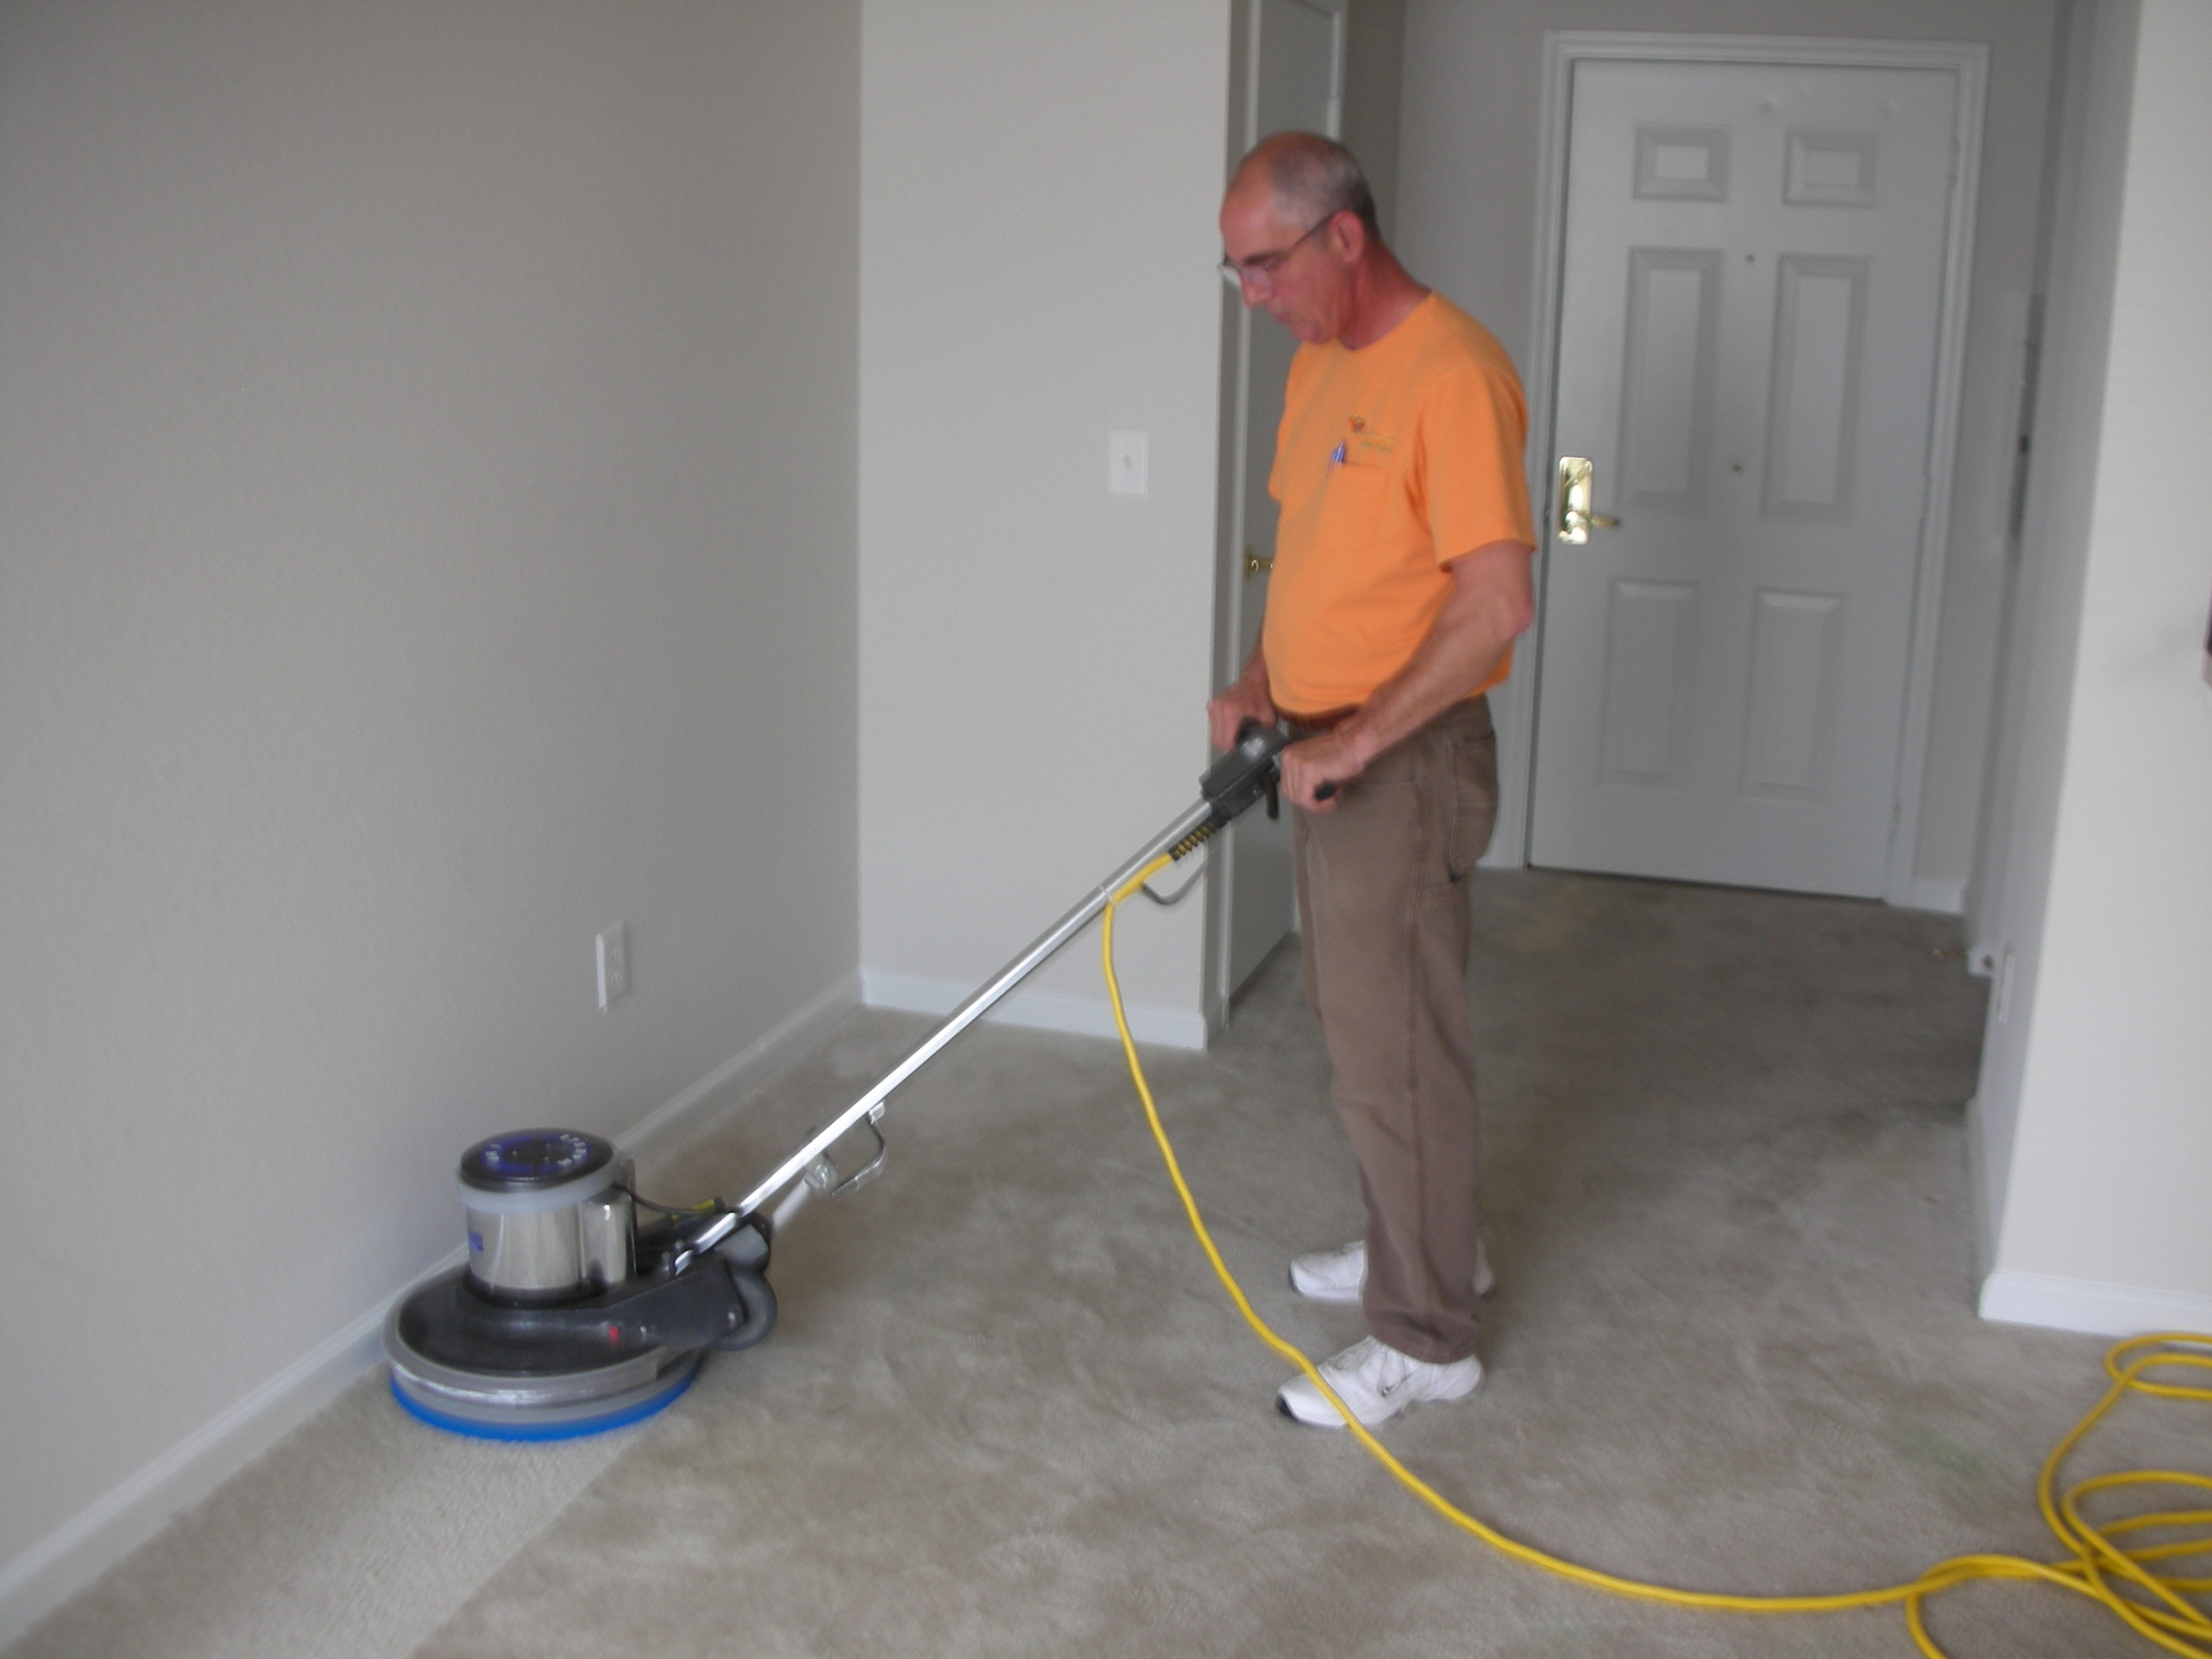 Rotary Bonnet Carpet Cleaning Machines Lets See Carpet